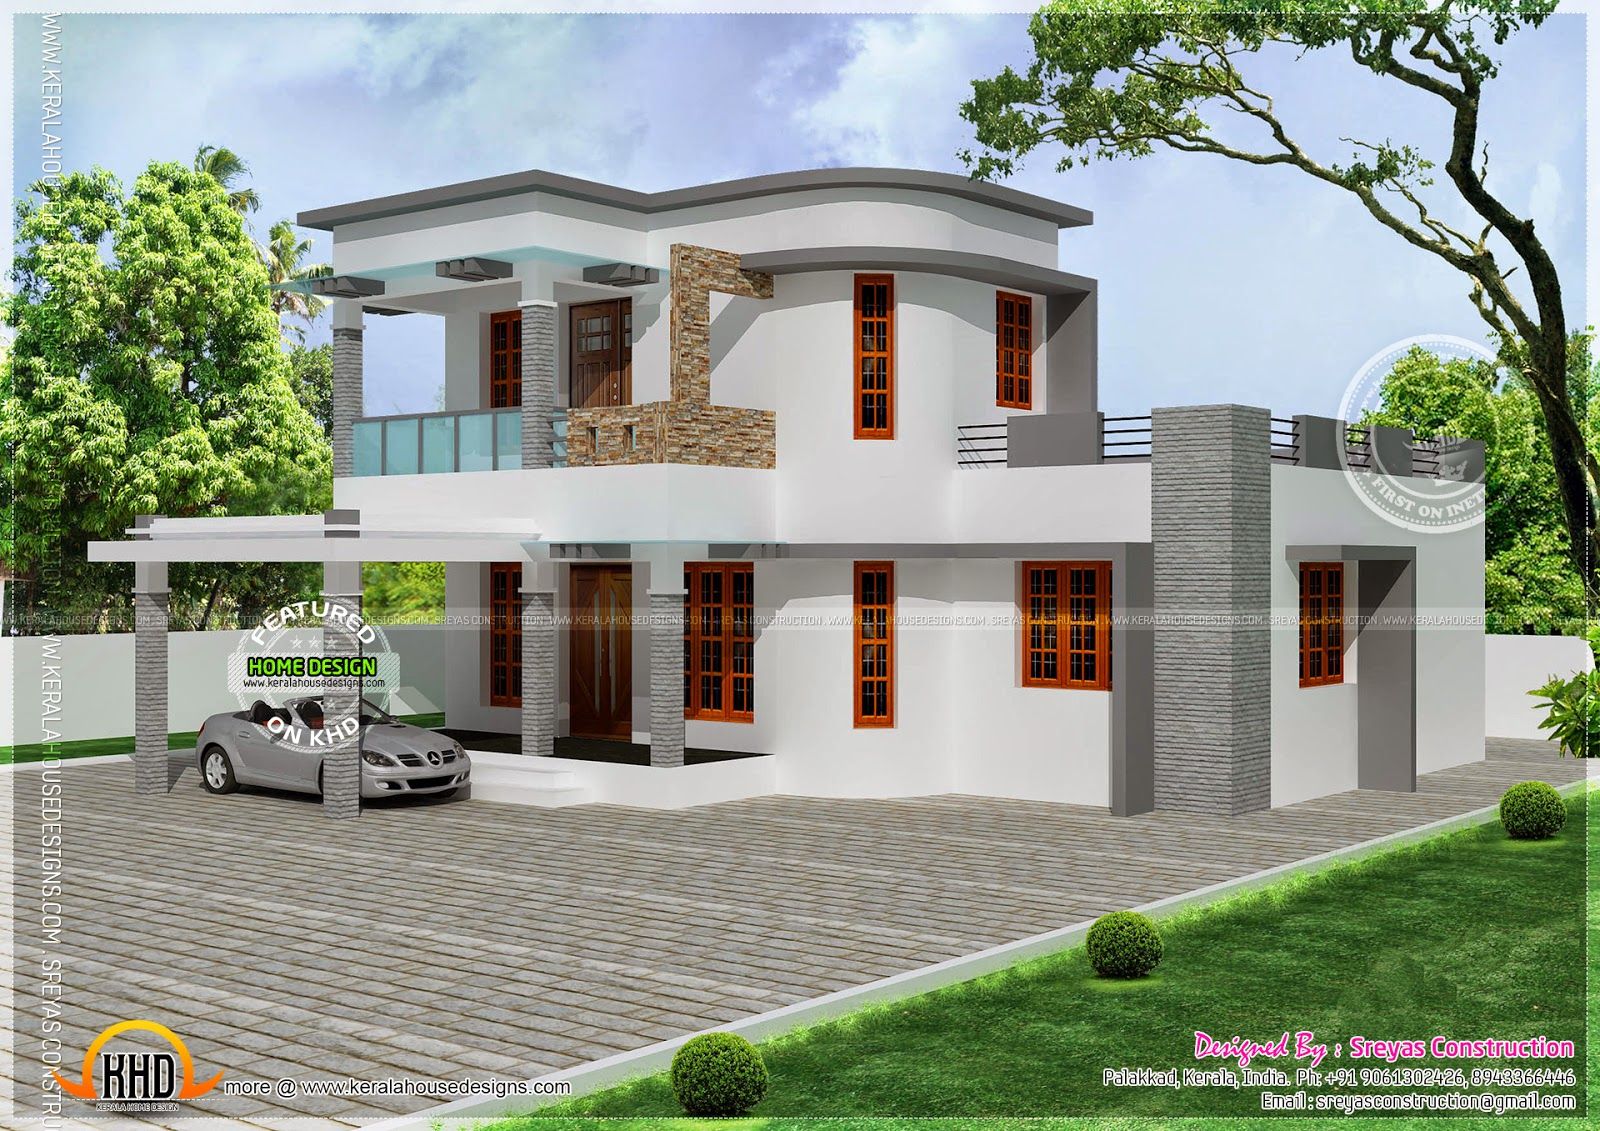 Flat with curvy mix roof house kerala home design and for Round home plans